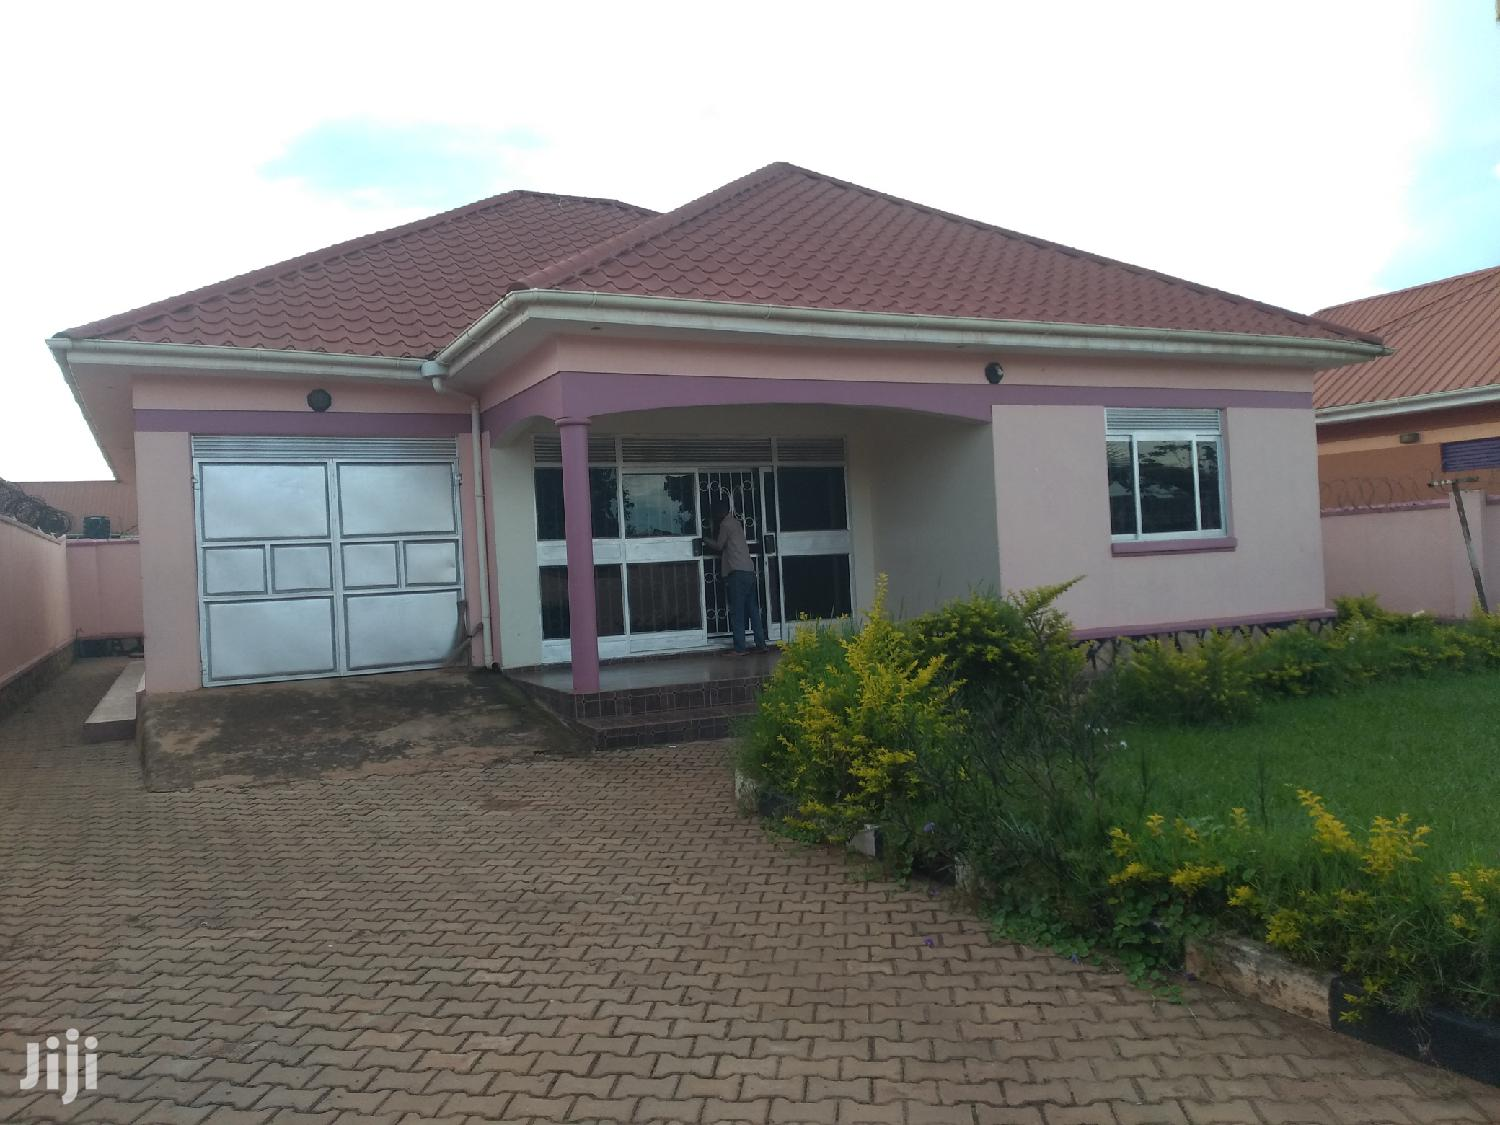 Kyaliwajala Four Bedrooms House for Sale With Ready Title | Houses & Apartments For Sale for sale in Kampala, Central Region, Uganda